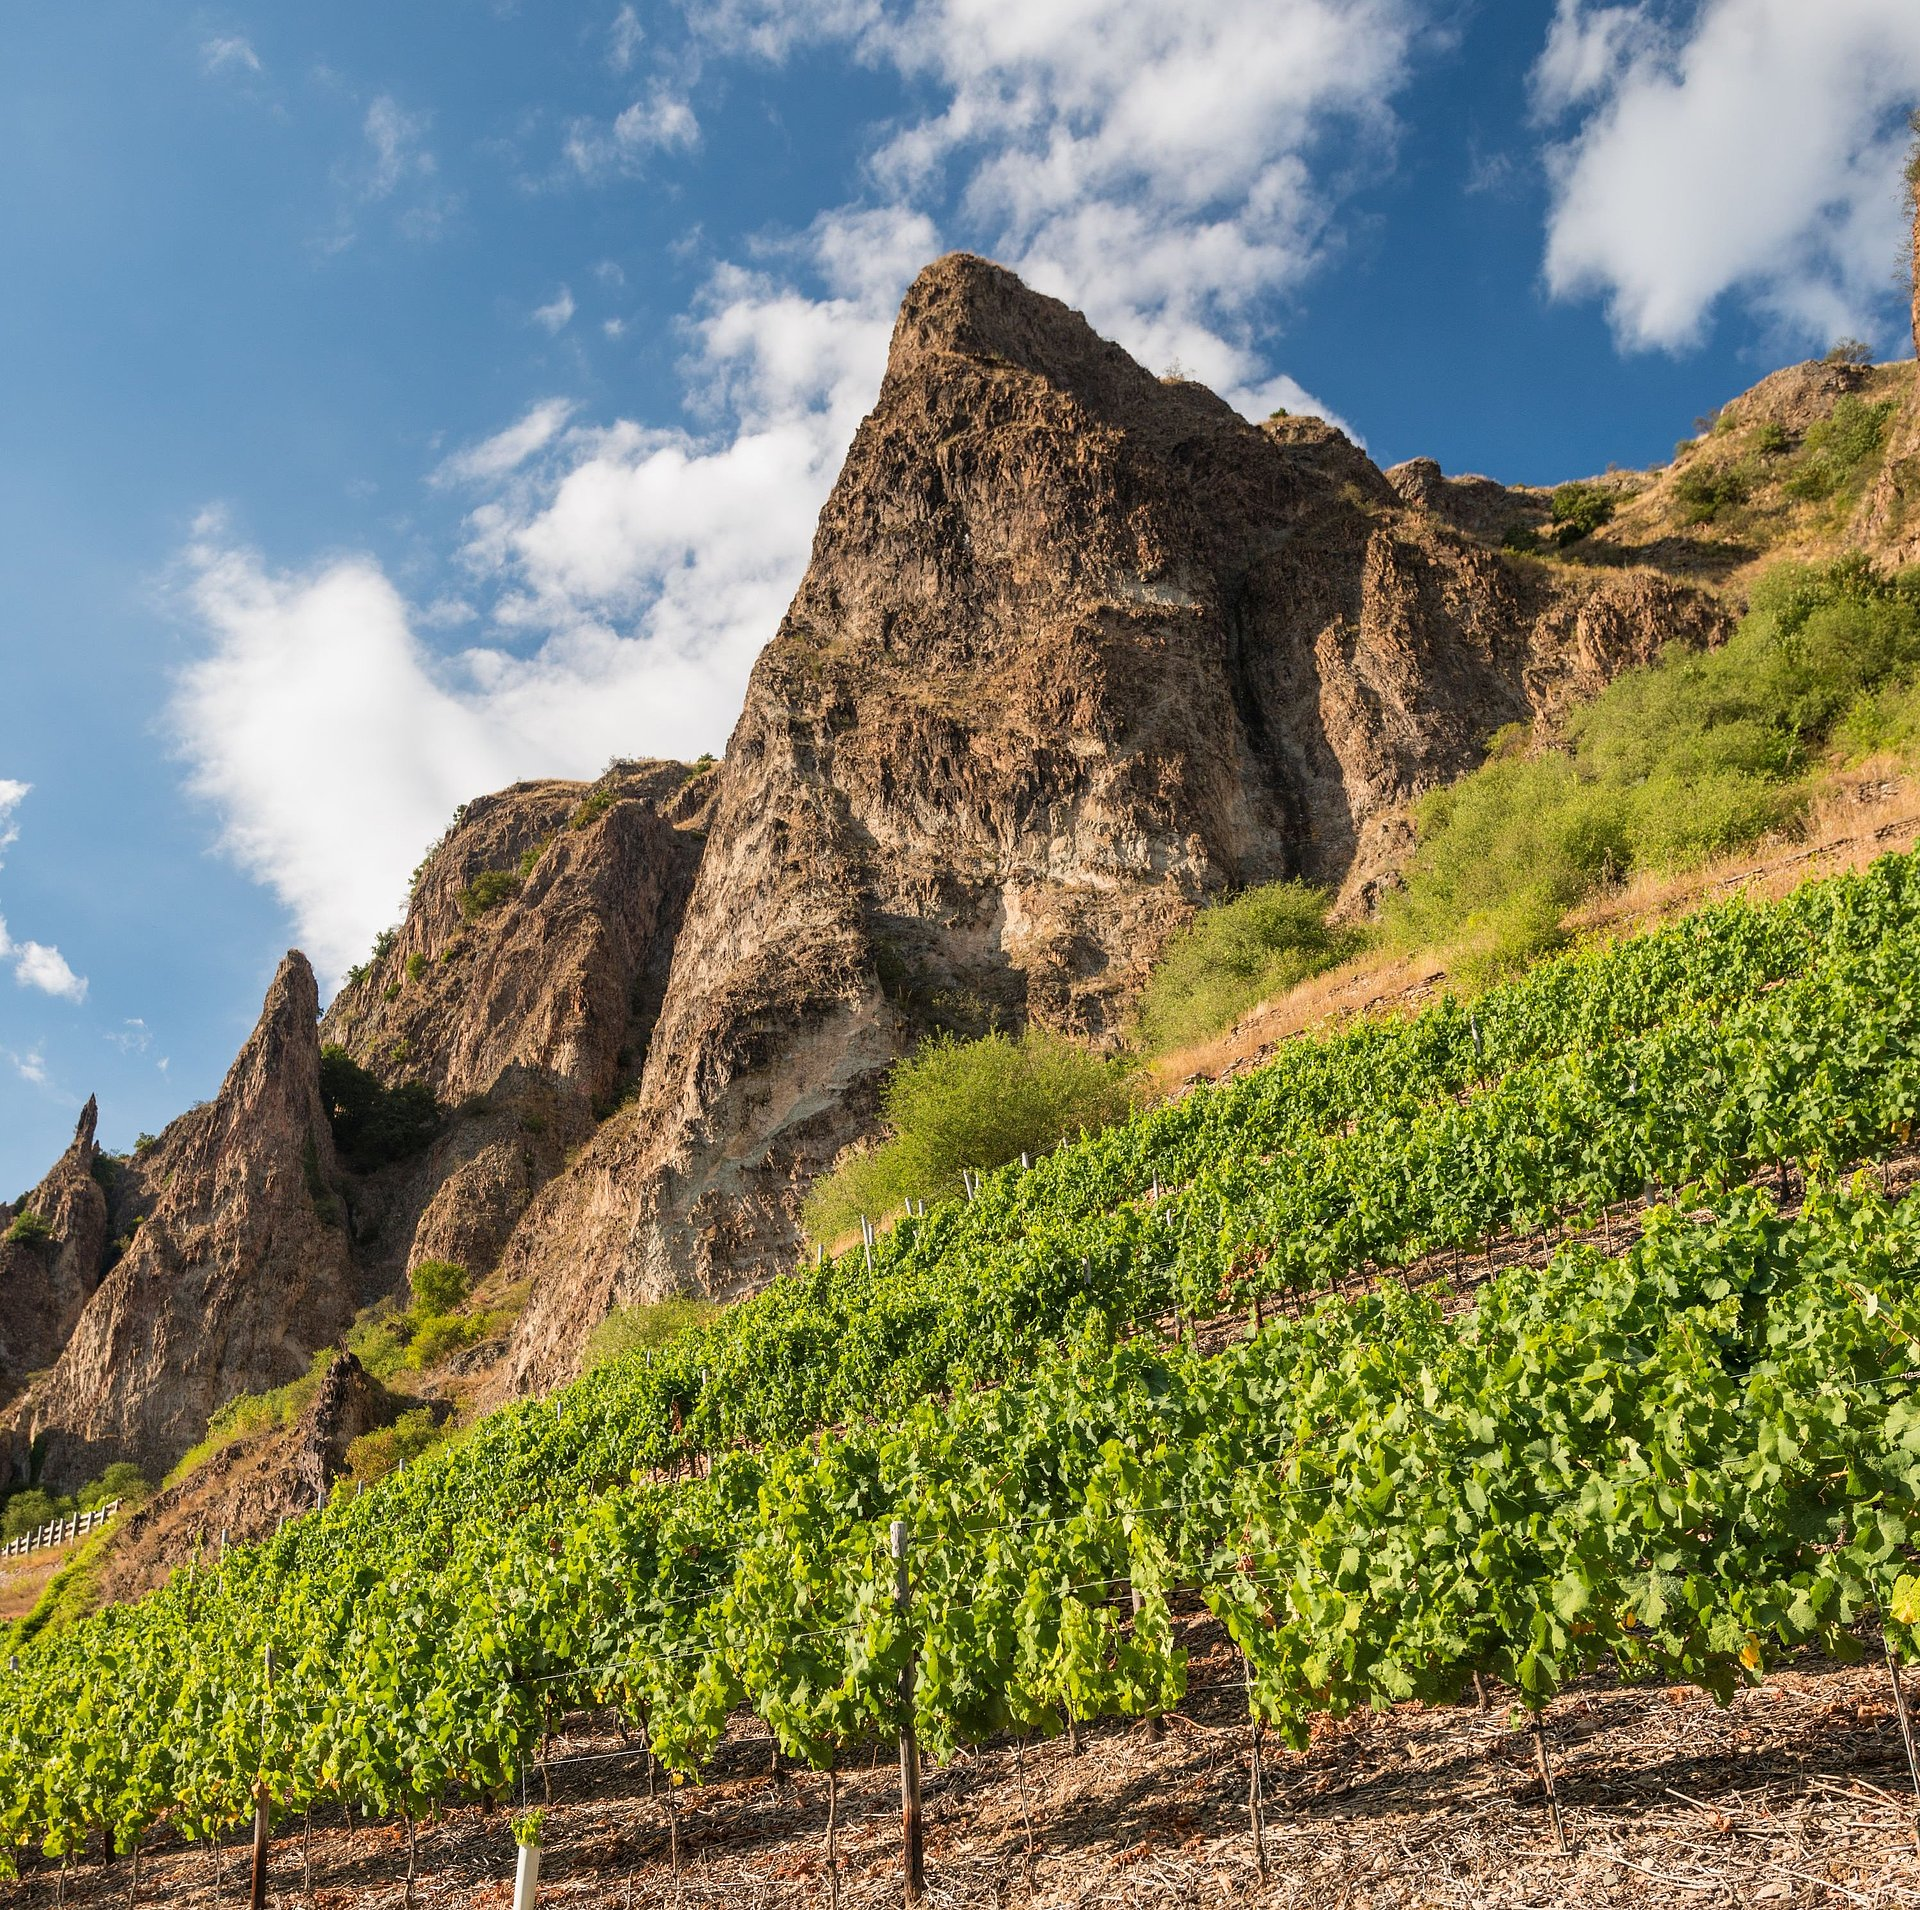 Vineyards at the Rotenfels cliff near Bad Münster am Stein-Ebernburg, Nahe valley